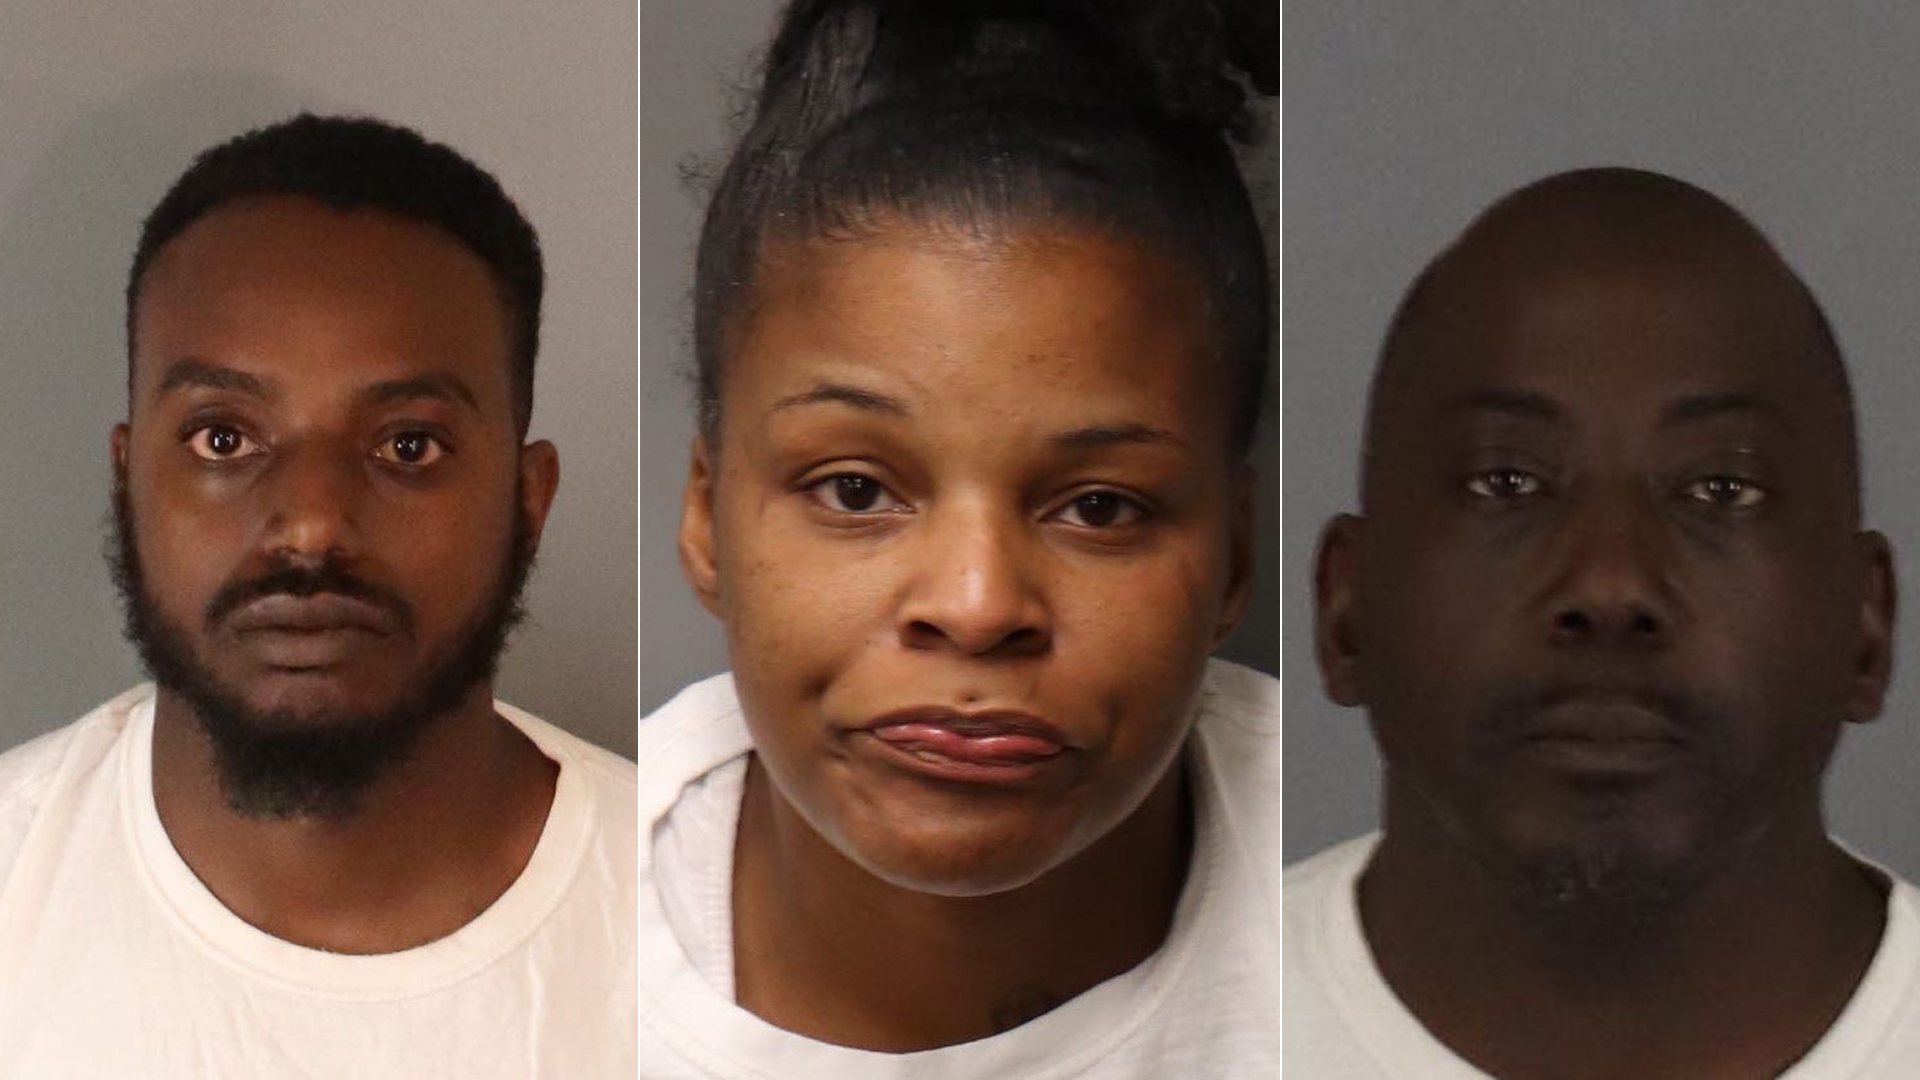 Left to right: John Lamont Bush, 30, Marleiya Onshel Barnes, 33, and Roderick Lamar Grandison, 47, pictured in photos provided by the Riverside Police Department following their arrests on March 4, 2020.